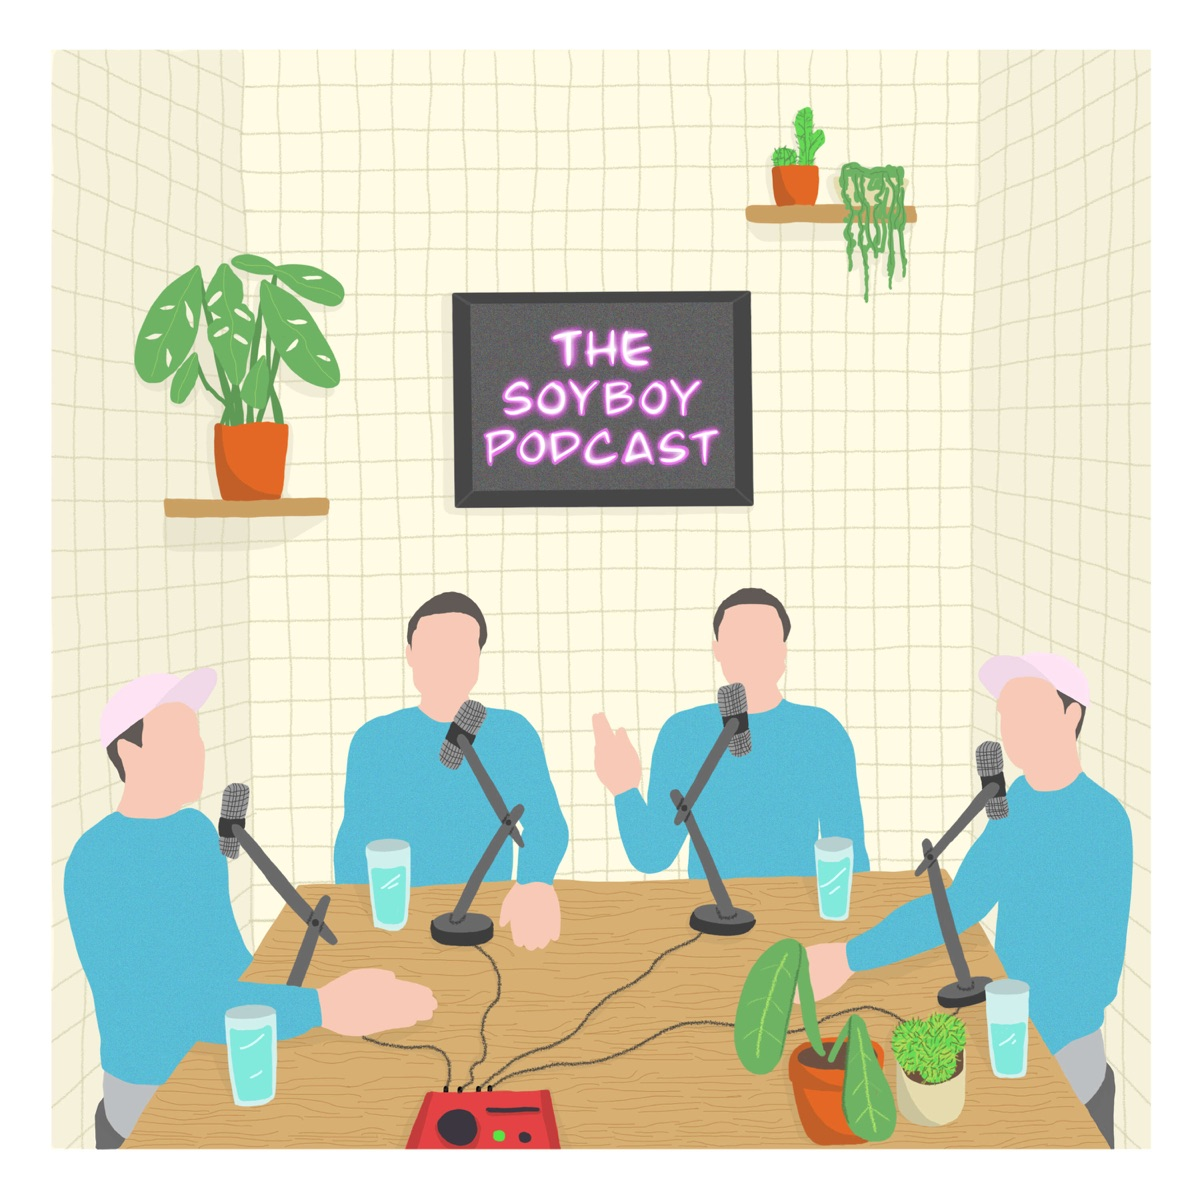 The Soyboy Podcast